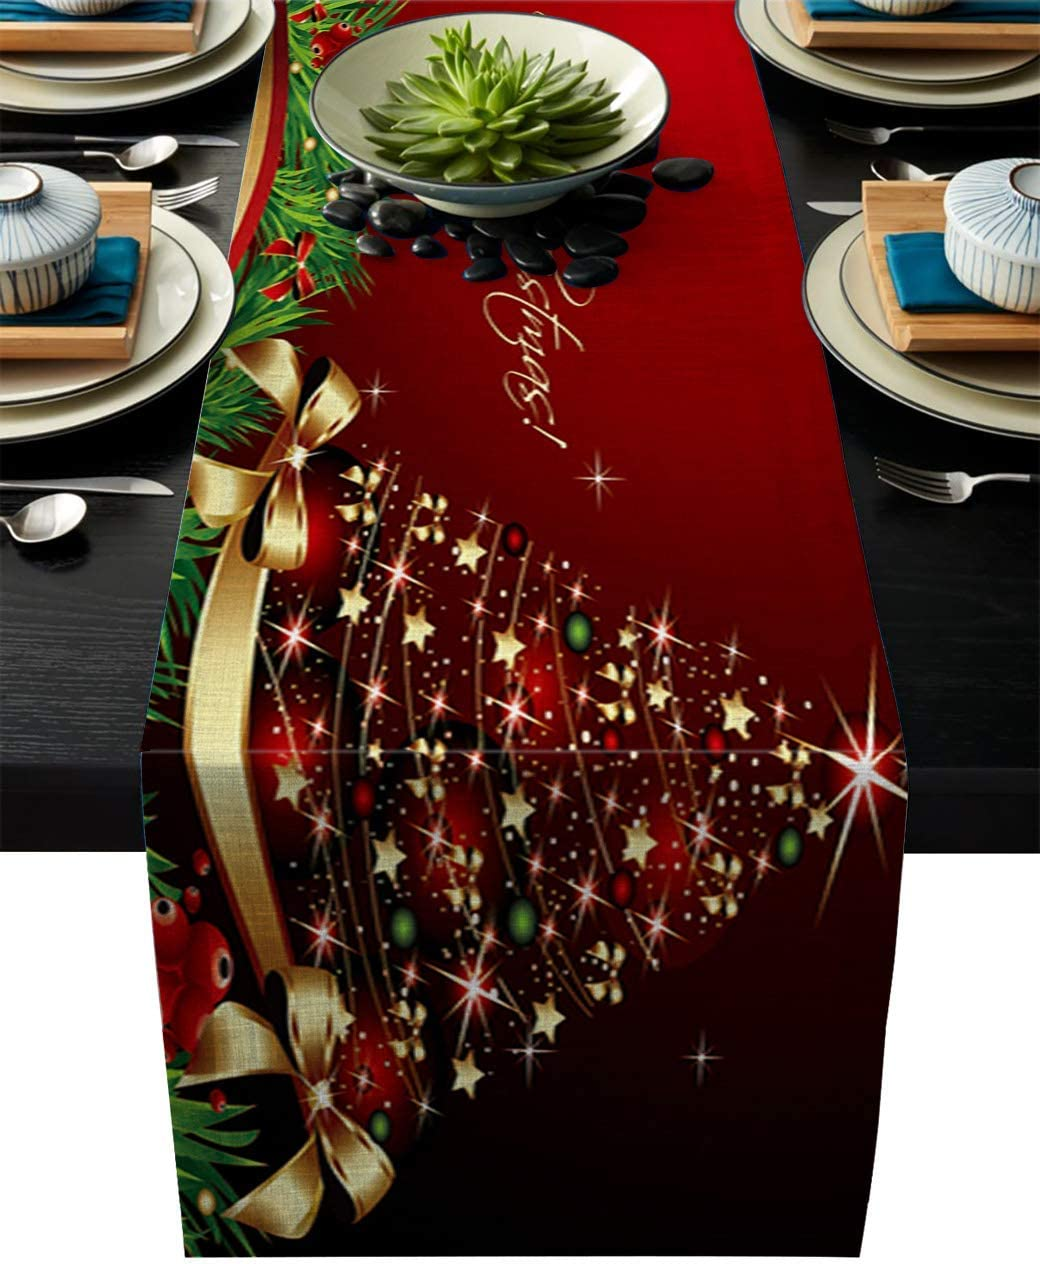 Cloud Dream Home Cotton Linen Table Runner Merry Xmas Table Setting Decor Christmas Tree, Green Red for Garden Wedding Parties Dinner Decoration - 16 x 72 inches